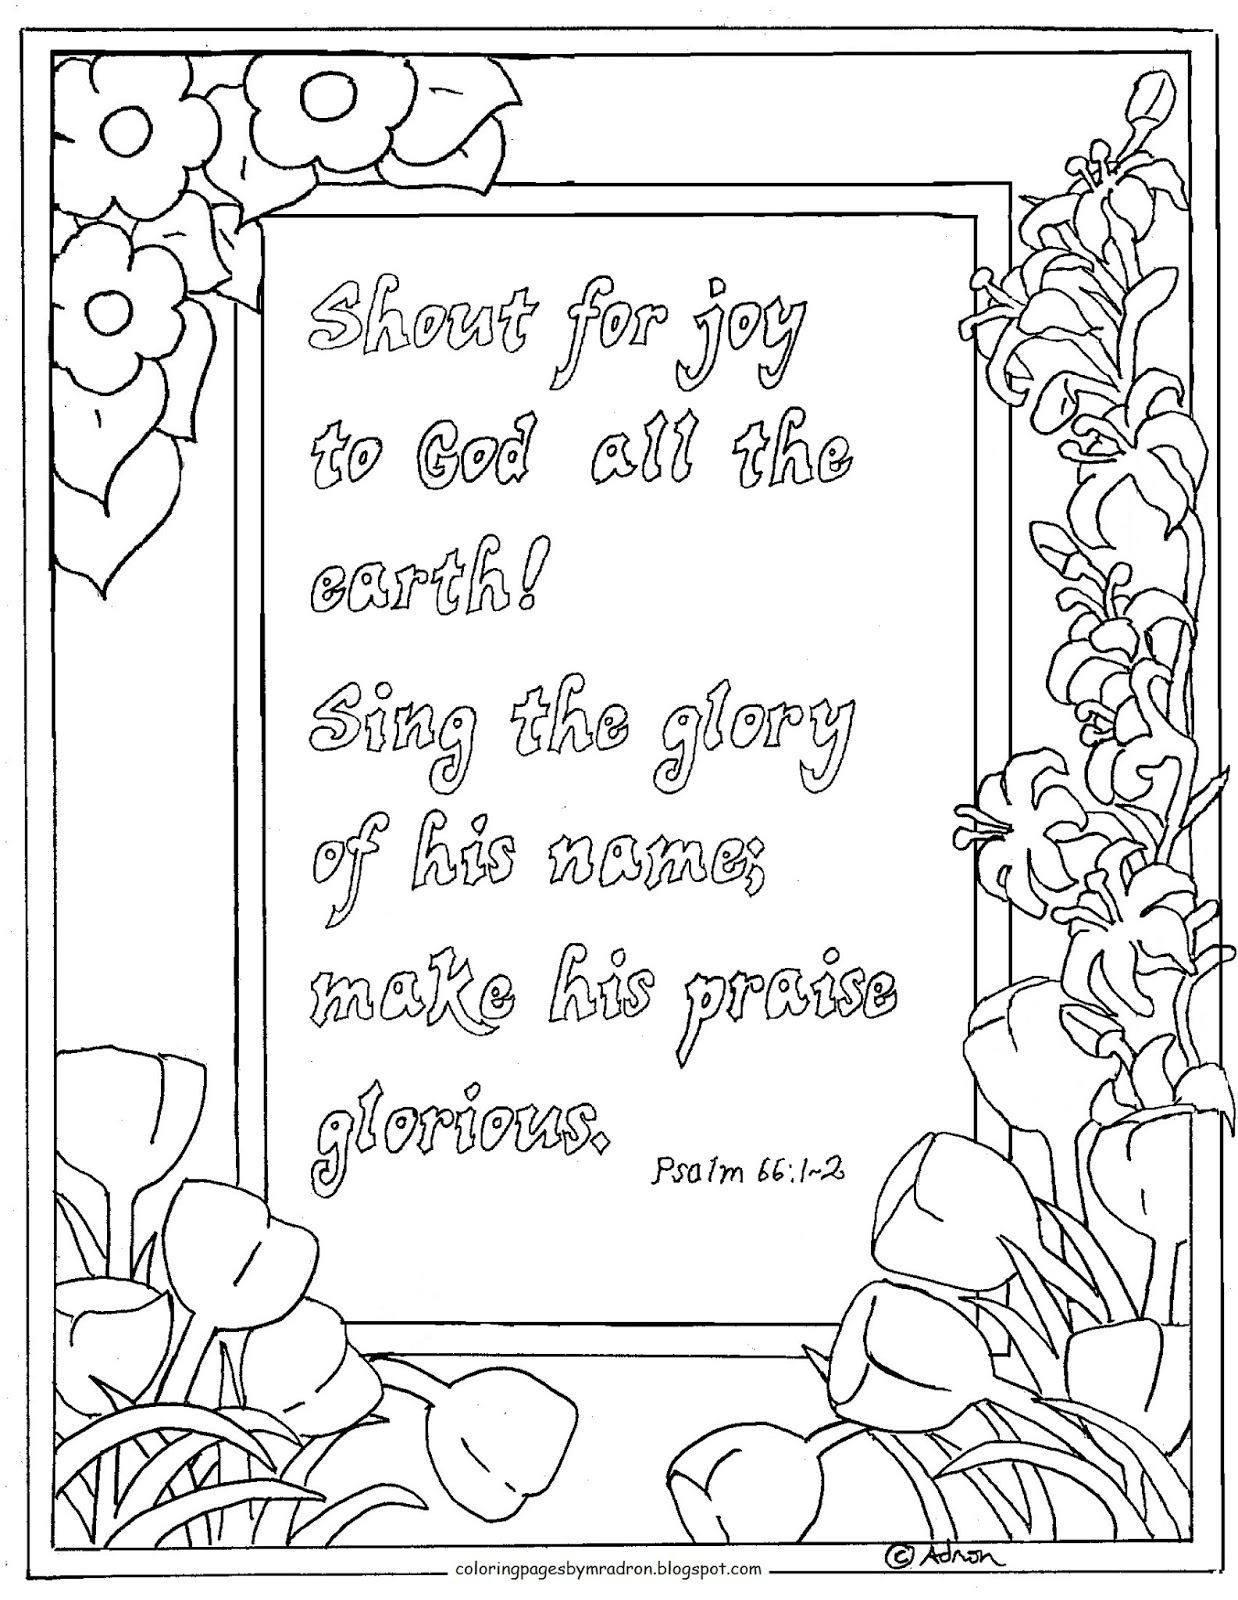 Joy Coloring Page Coloring Pages For Kidsmradron Shout For Joy Psalm 6612